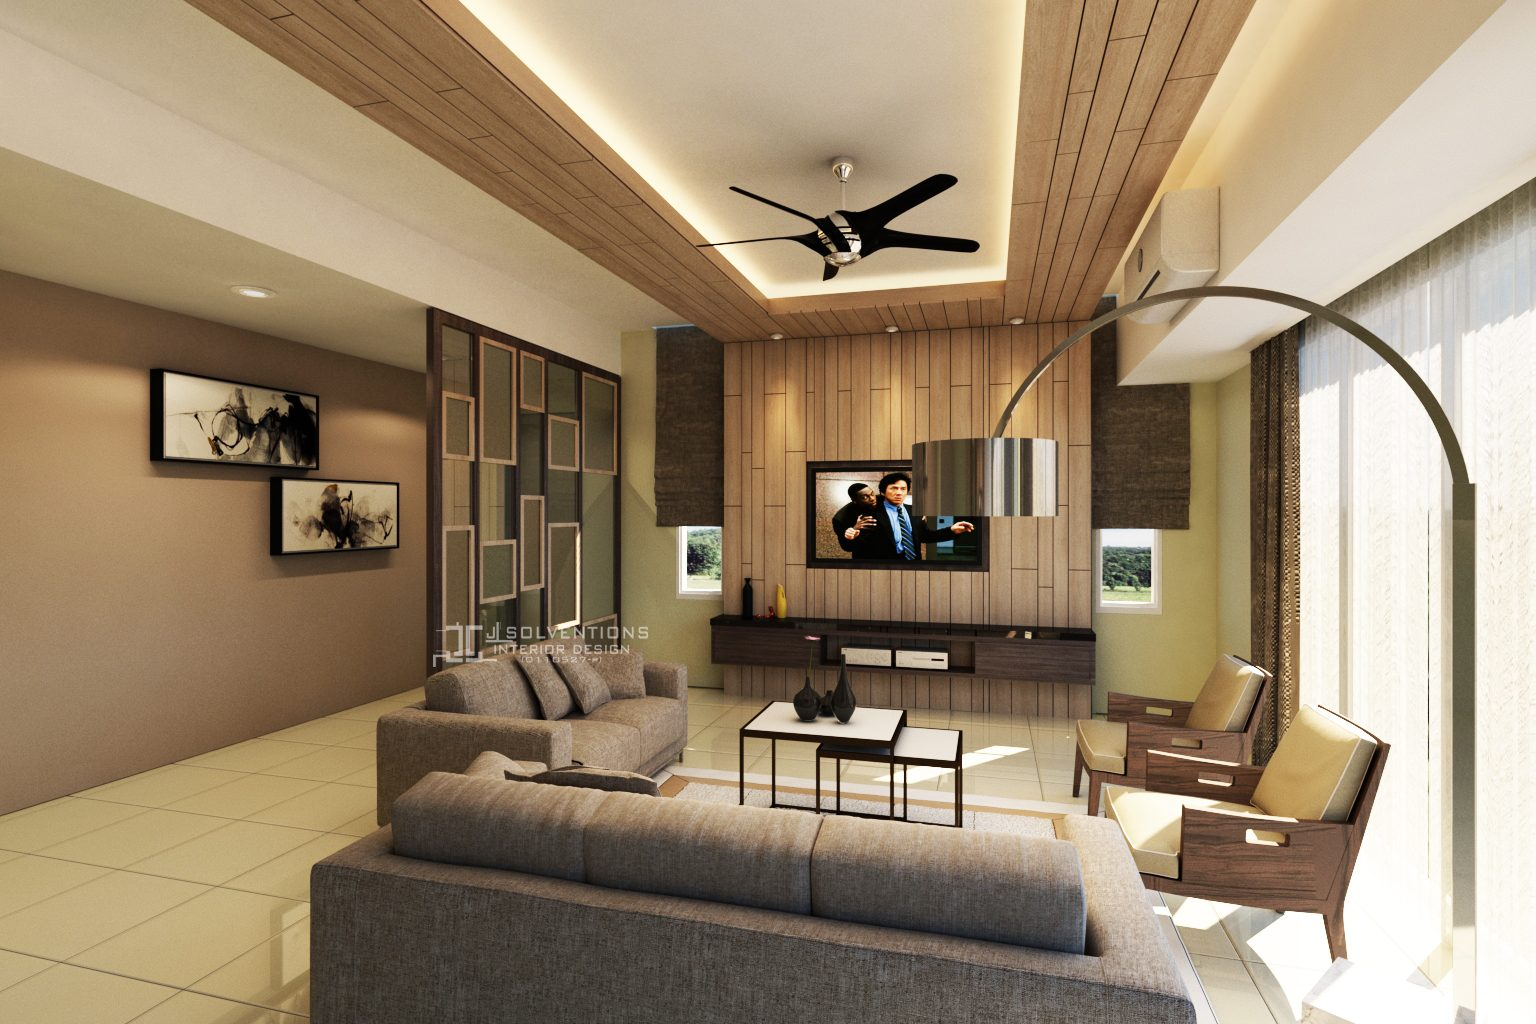 Charmant Concept Home With Wood Cove Ceiling. Project By: J Solventions Interior  Design